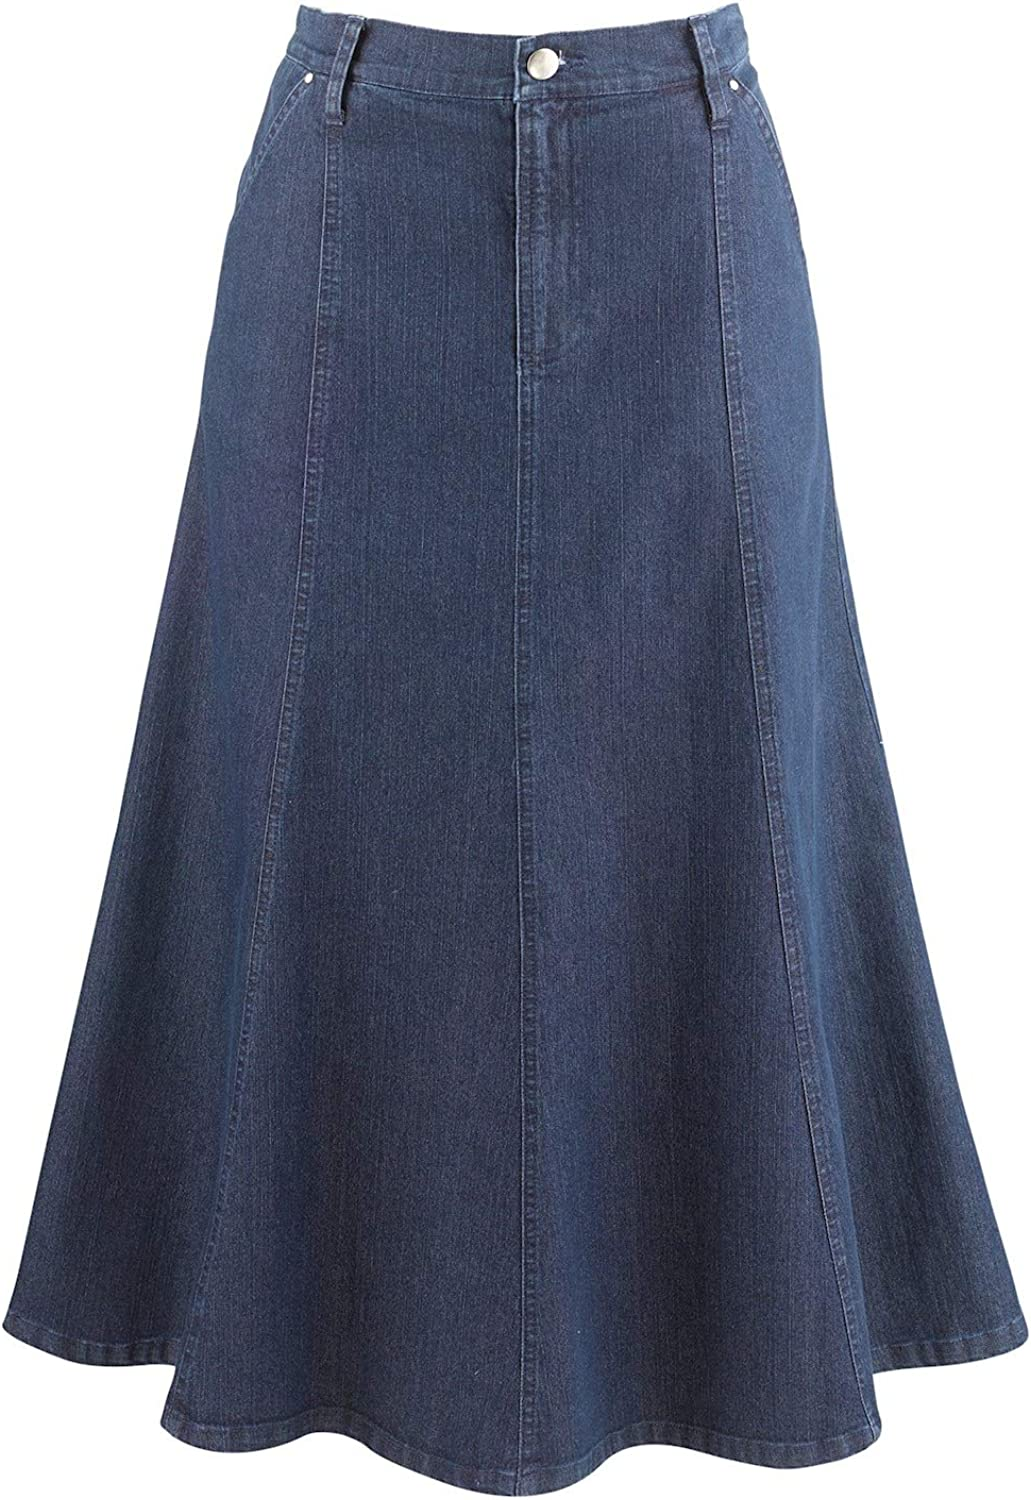 1980s Clothing, Fashion | 80s Style Clothes Womens 8-Gore Denim Riding Maxi Skirt - 31.5 Long $44.95 AT vintagedancer.com